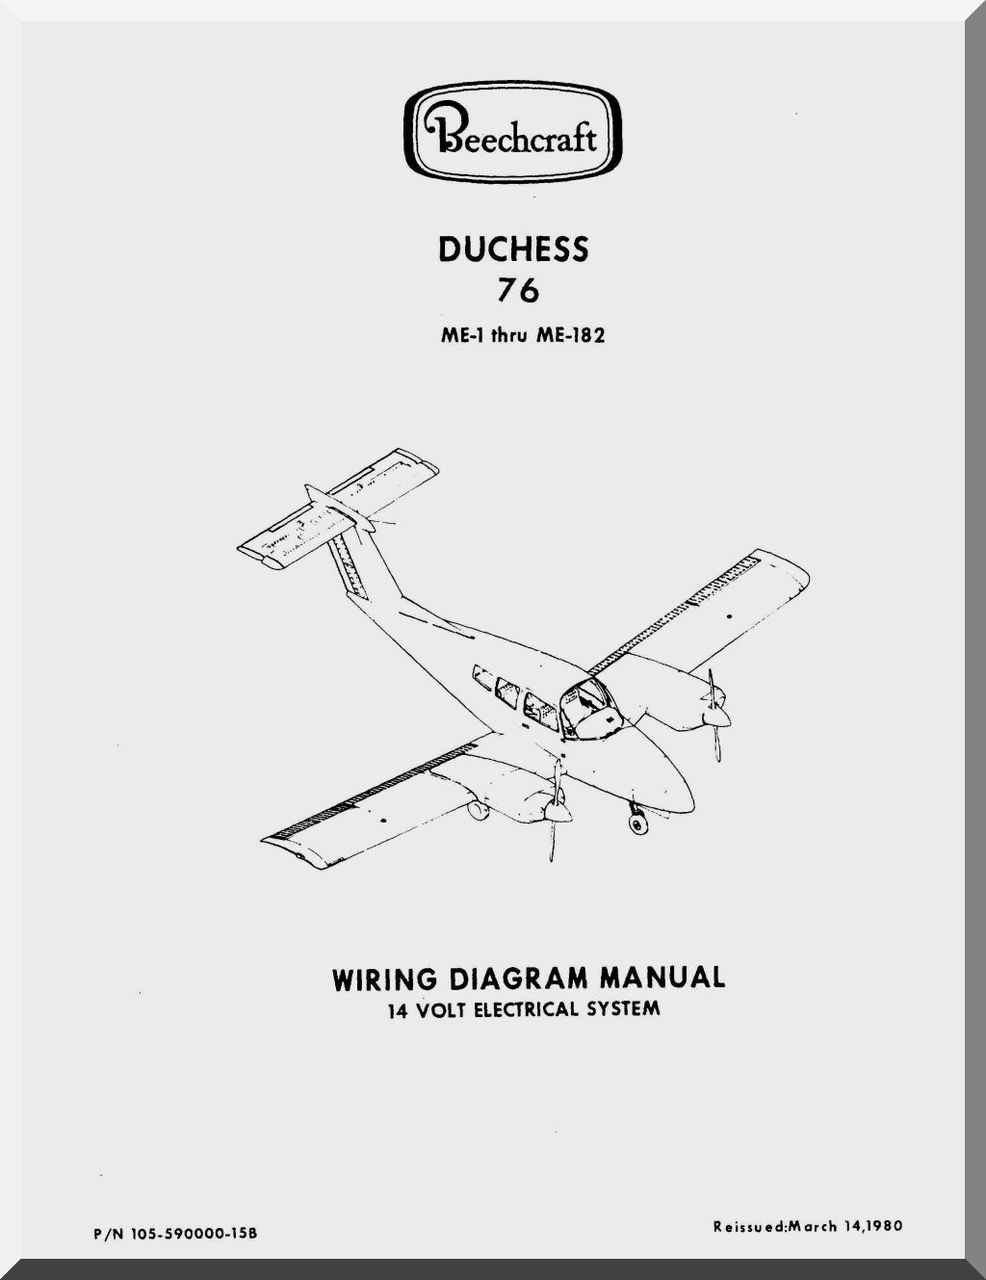 wiring diagram manual aircraft